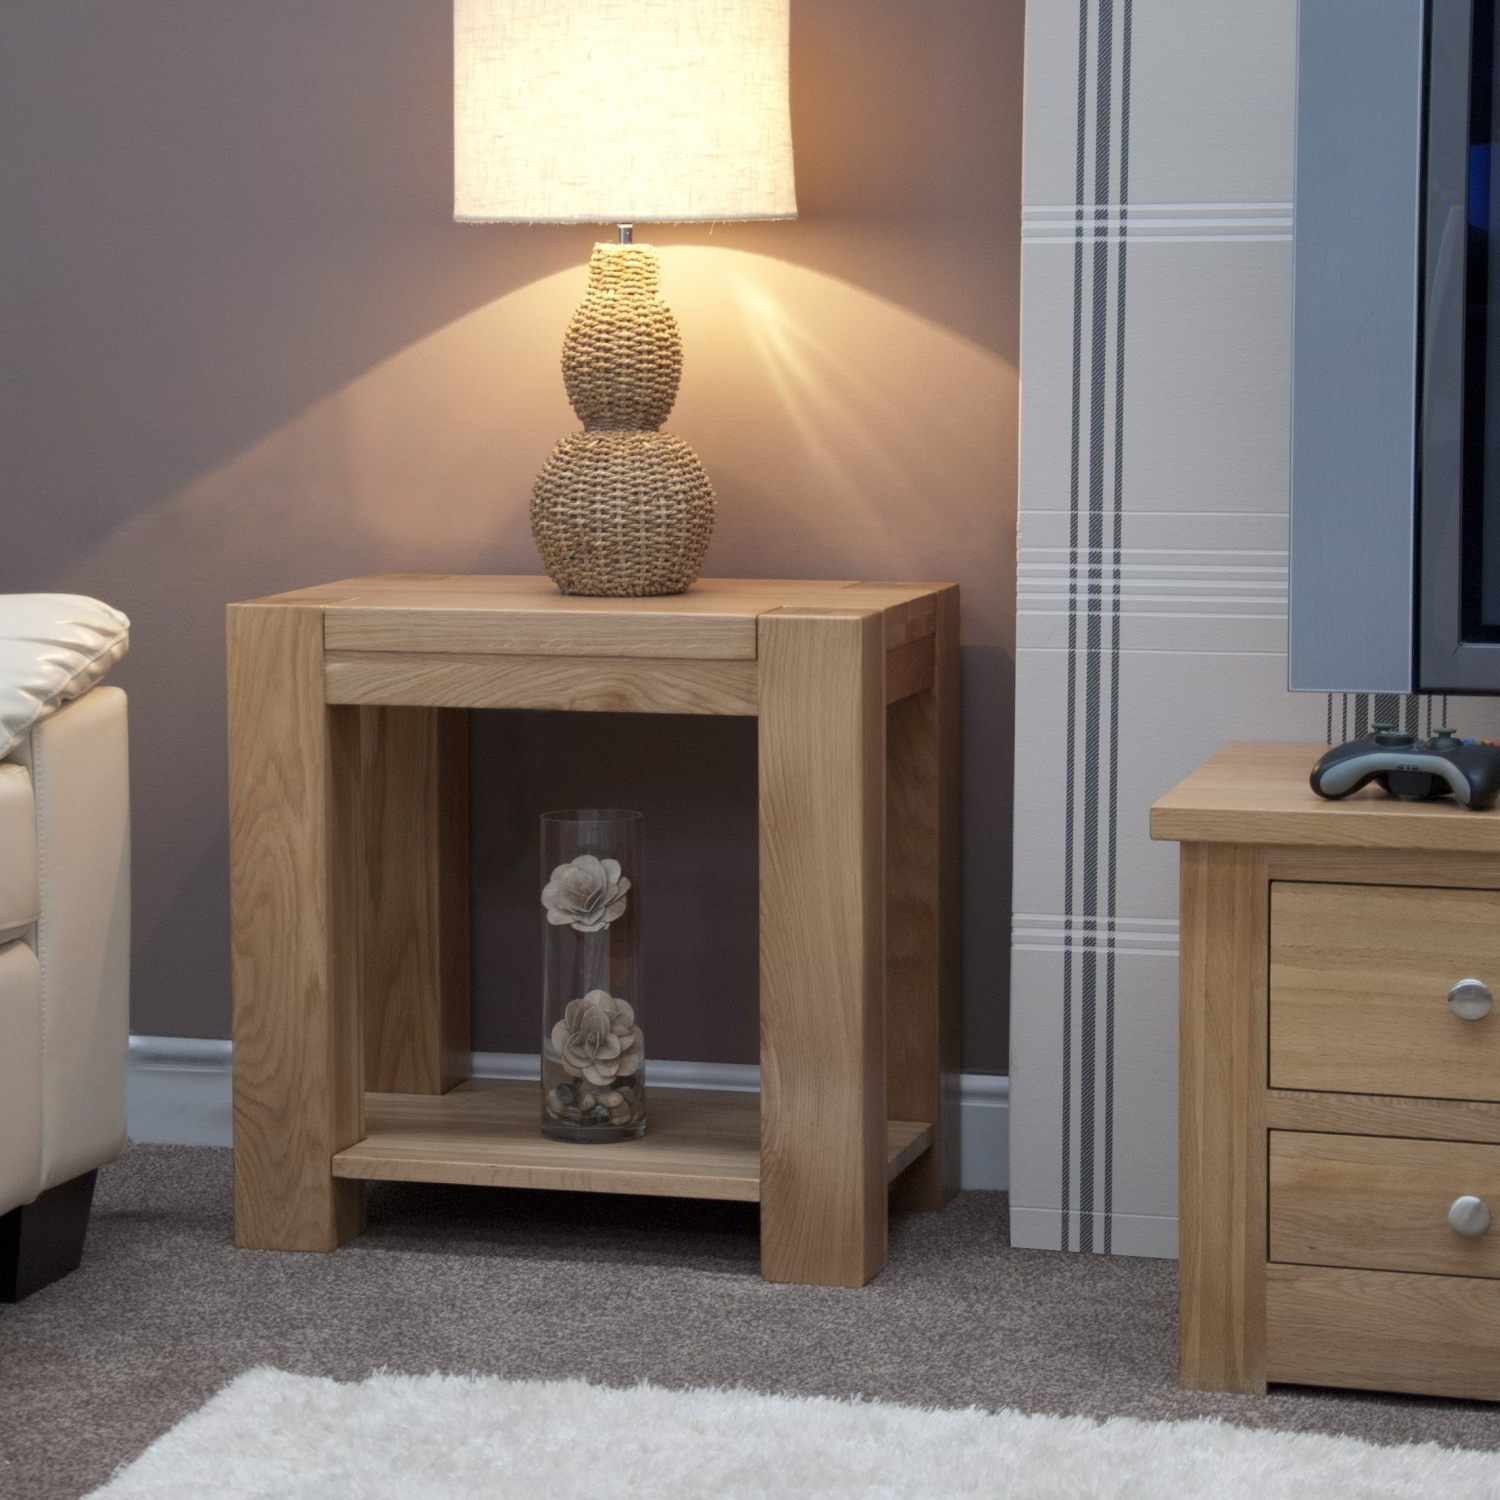 Pemberton solid chunky oak living room furniture lamp sofa for Living room furniture uk